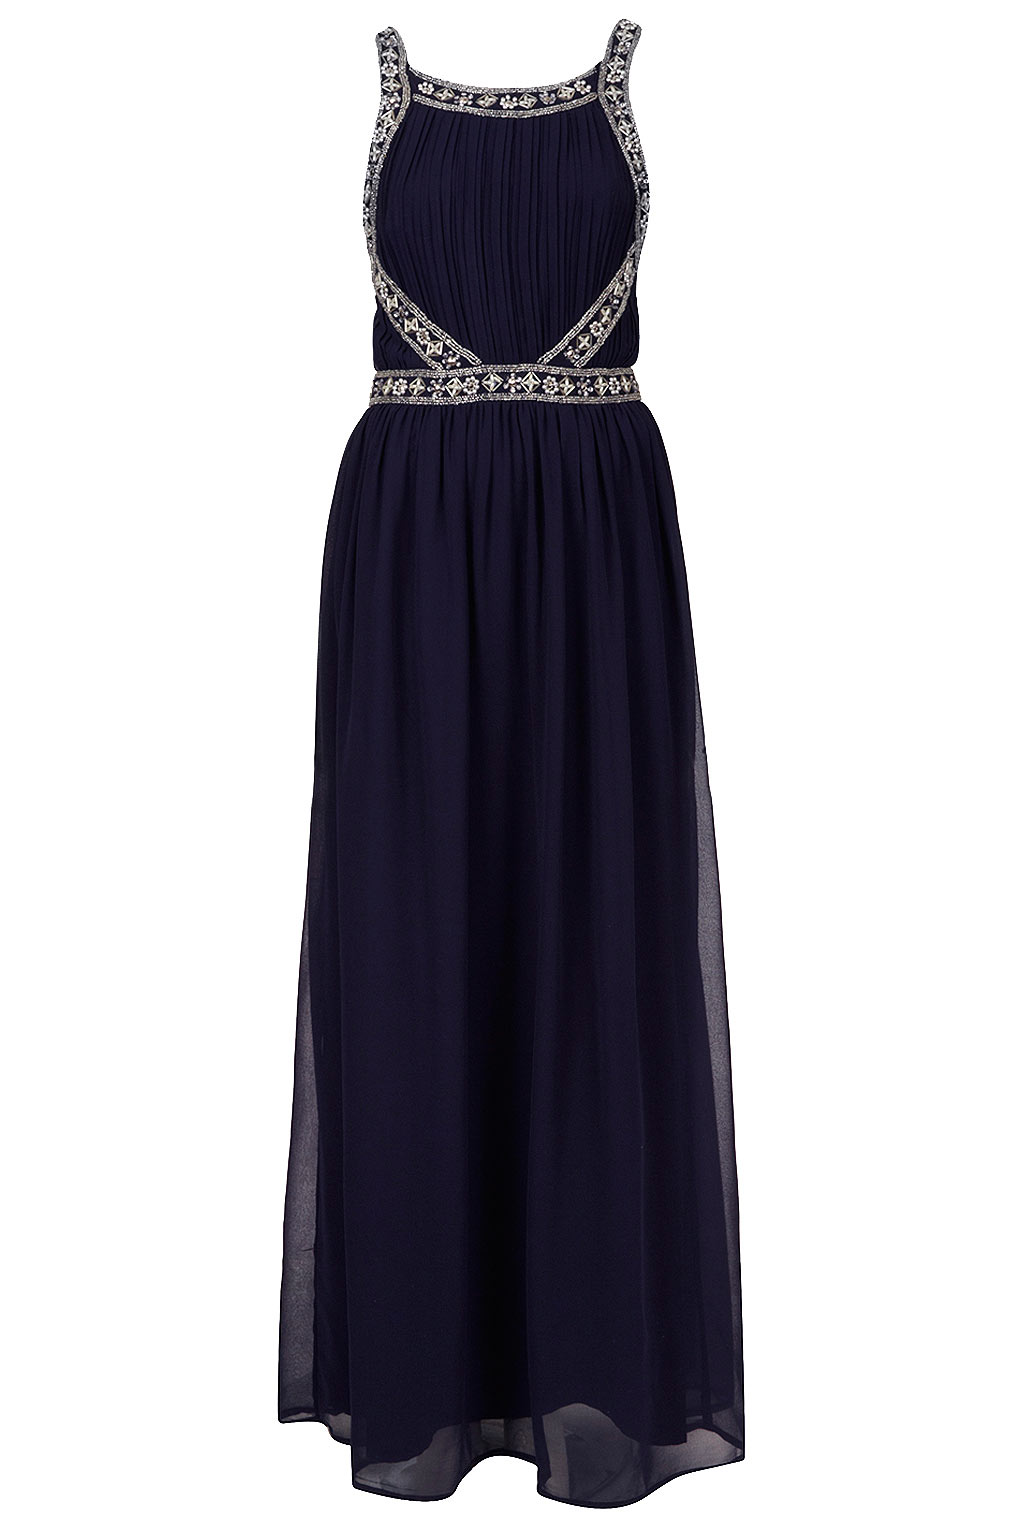 Navy Beaded Dress River Island